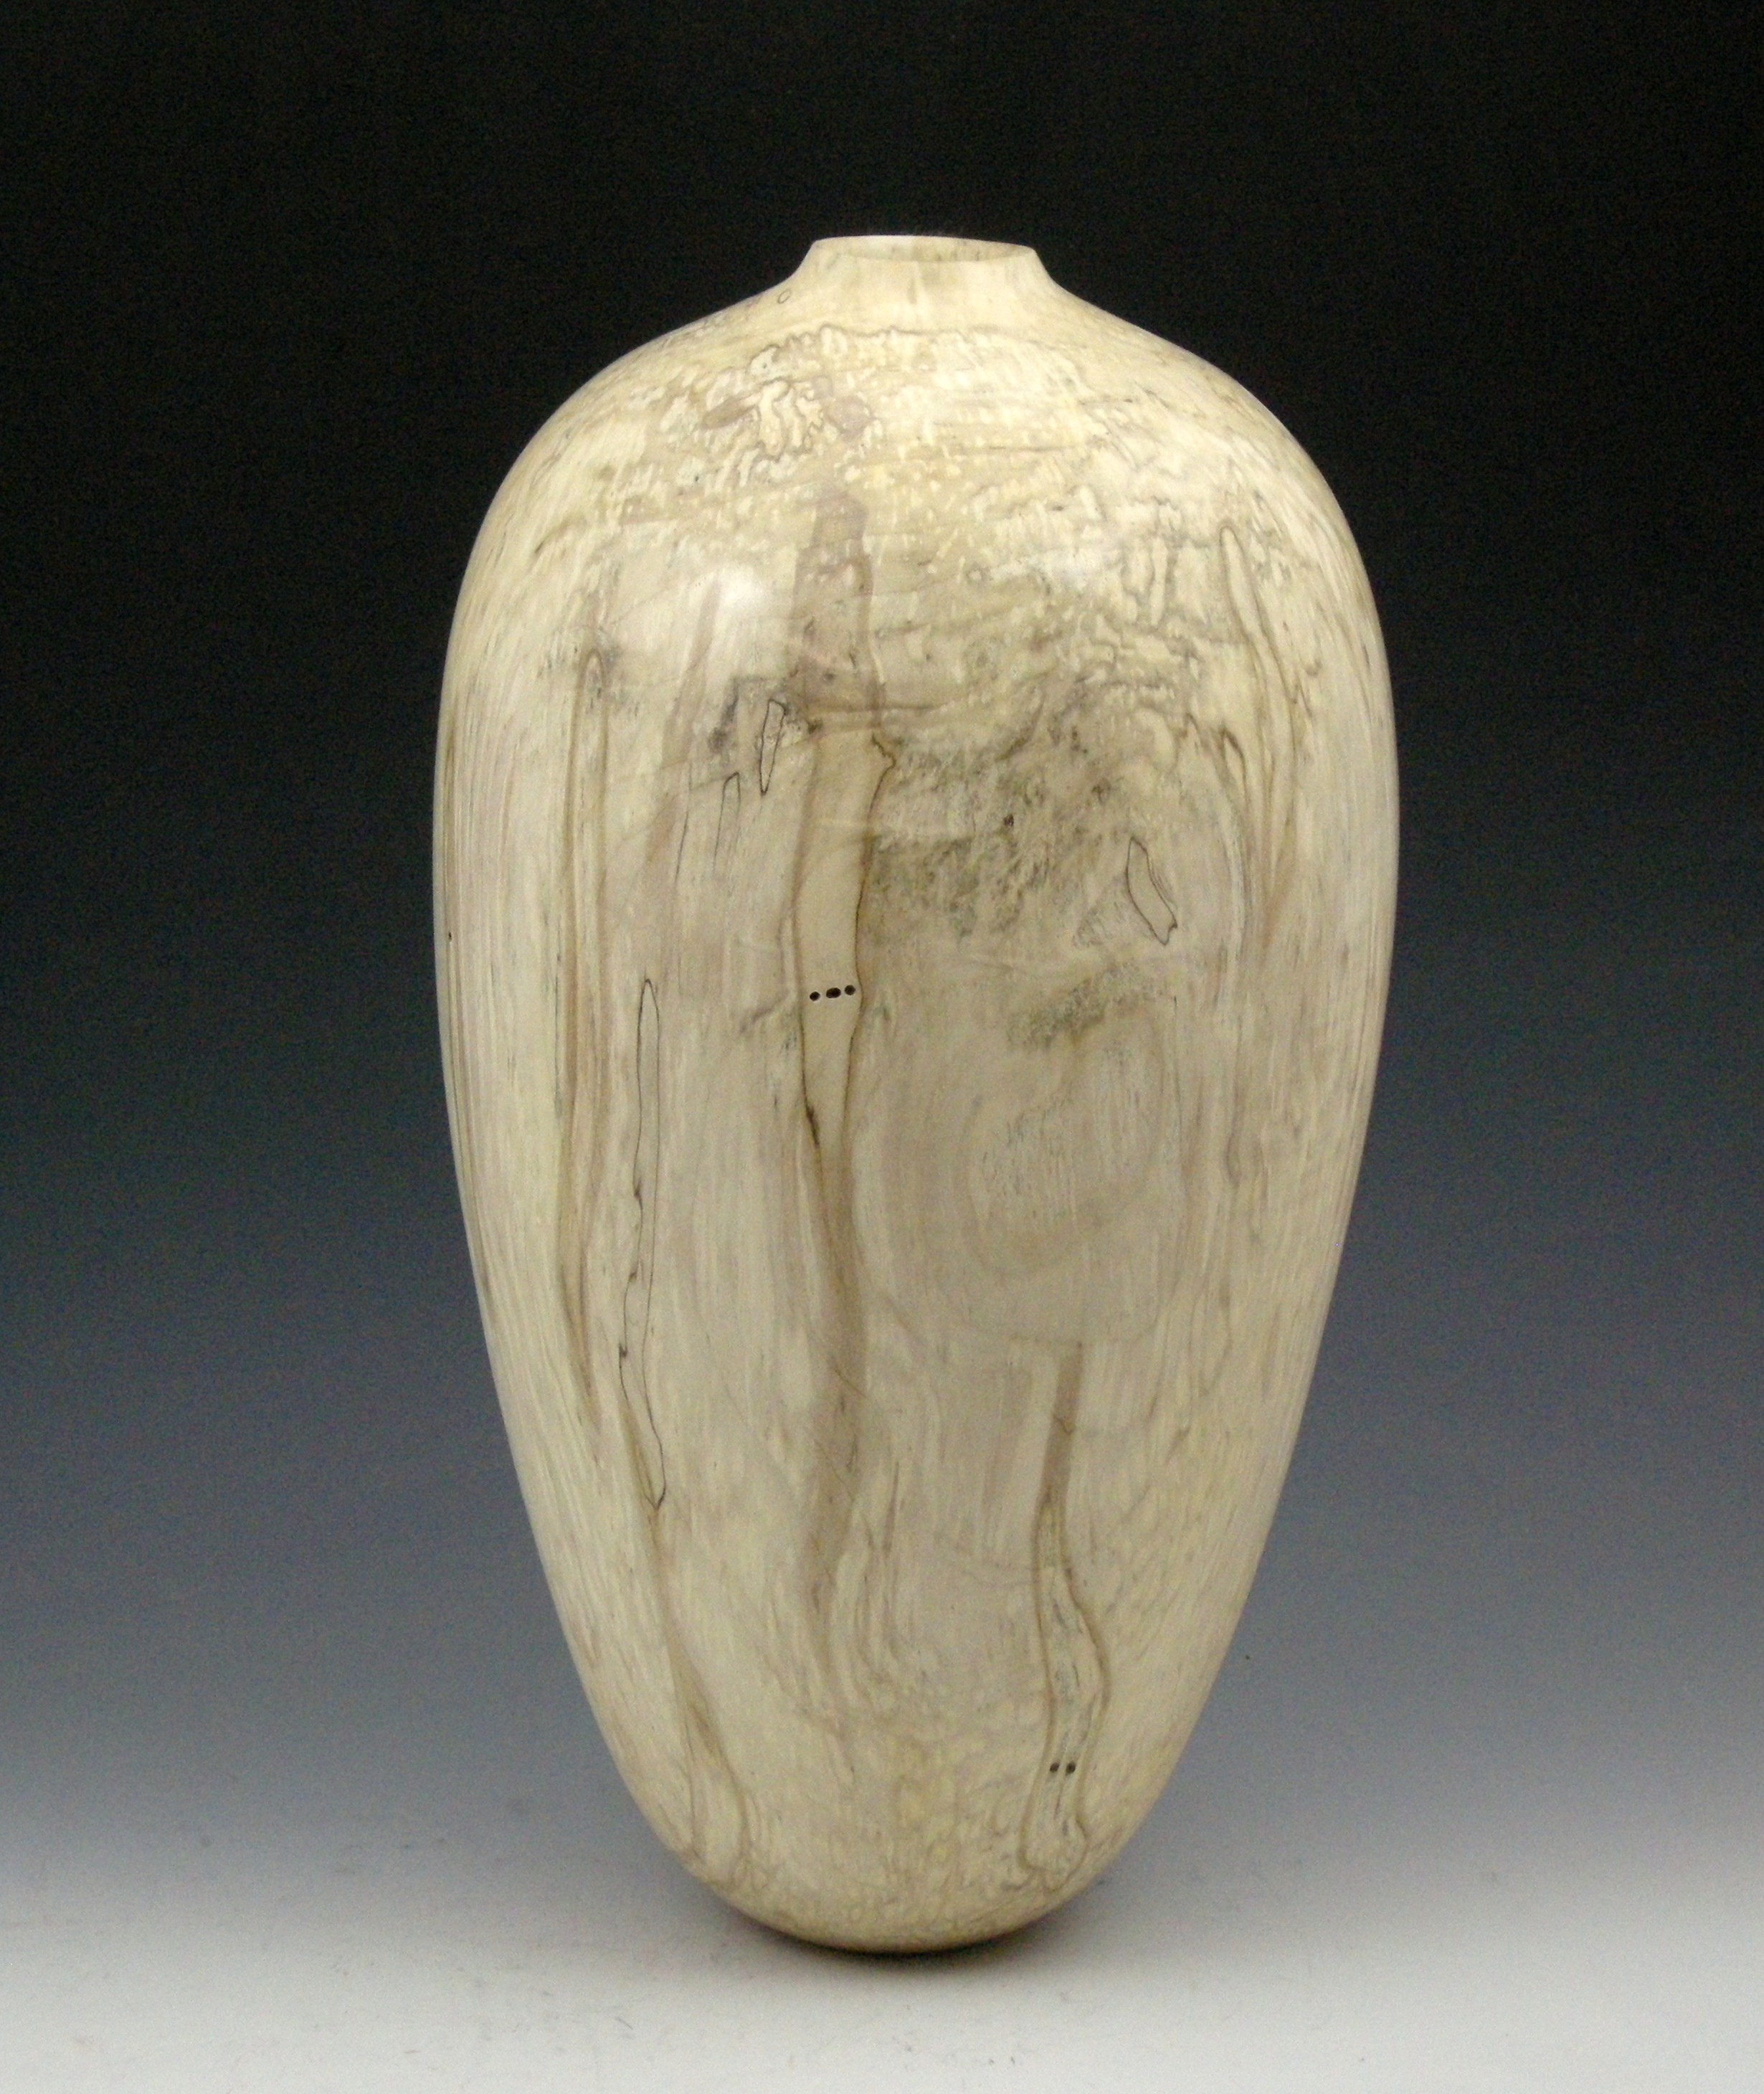 506-274-1Mableized Maple